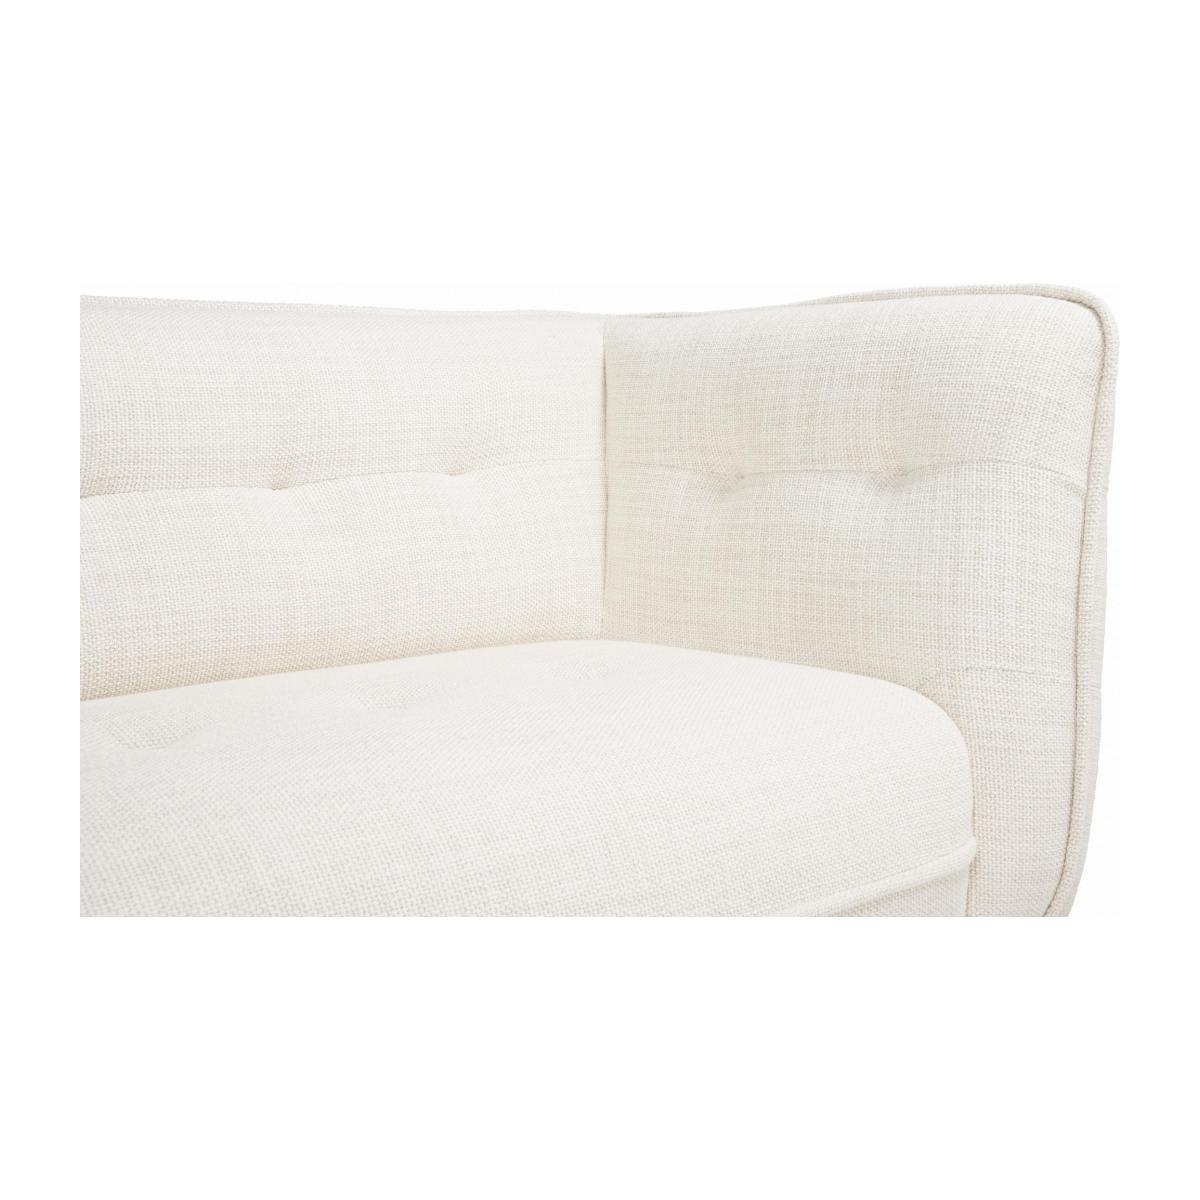 3 seater sofa in Fasoli fabric, snow white and oak legs n°6